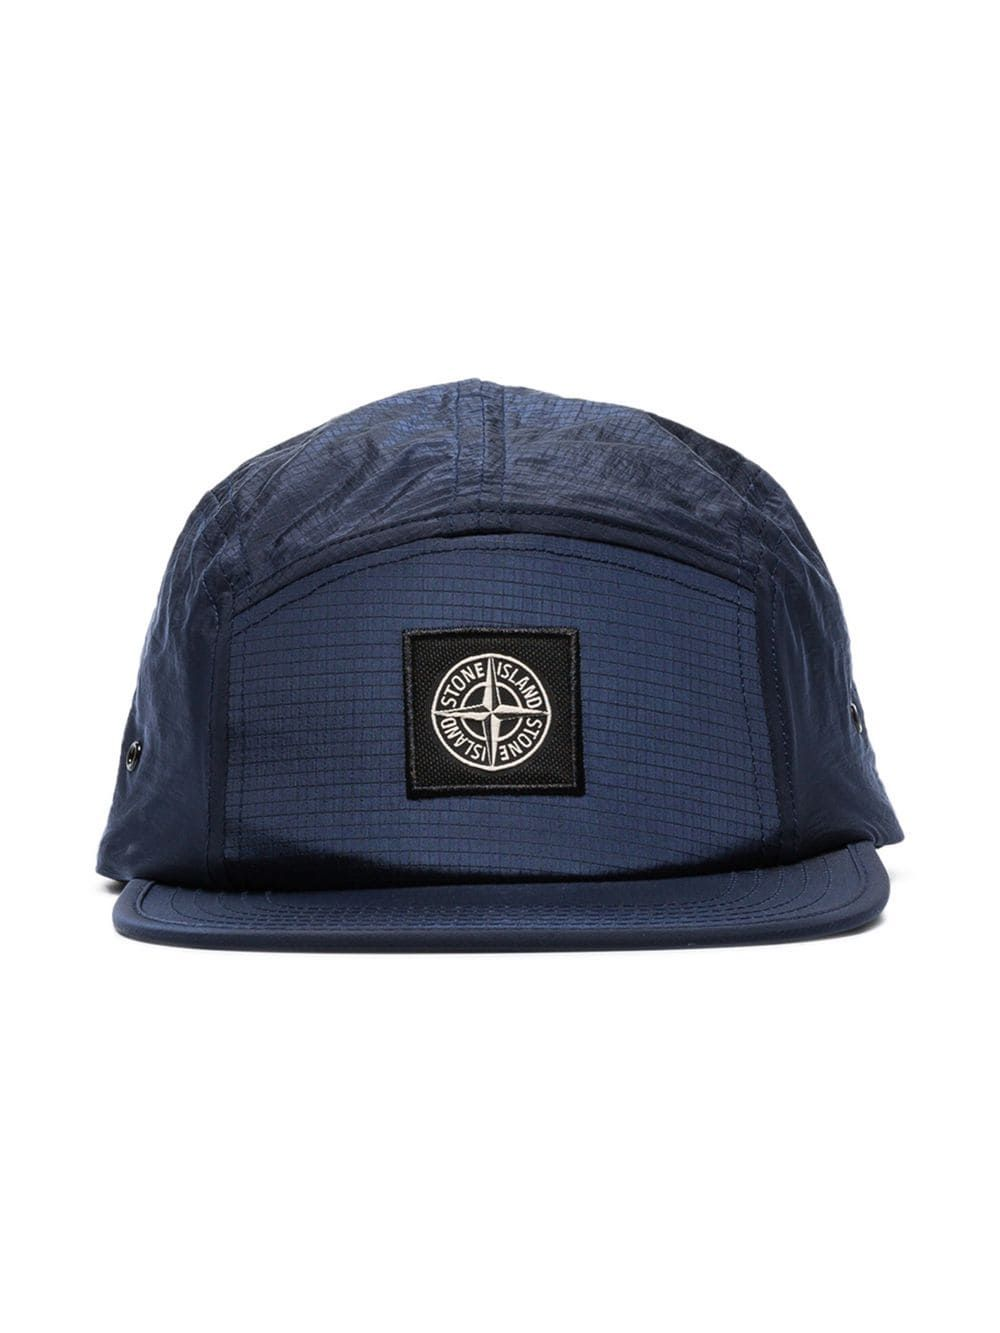 42bb85fa5 Stone Island blue logo embroidered patch hat | Products in 2019 ...